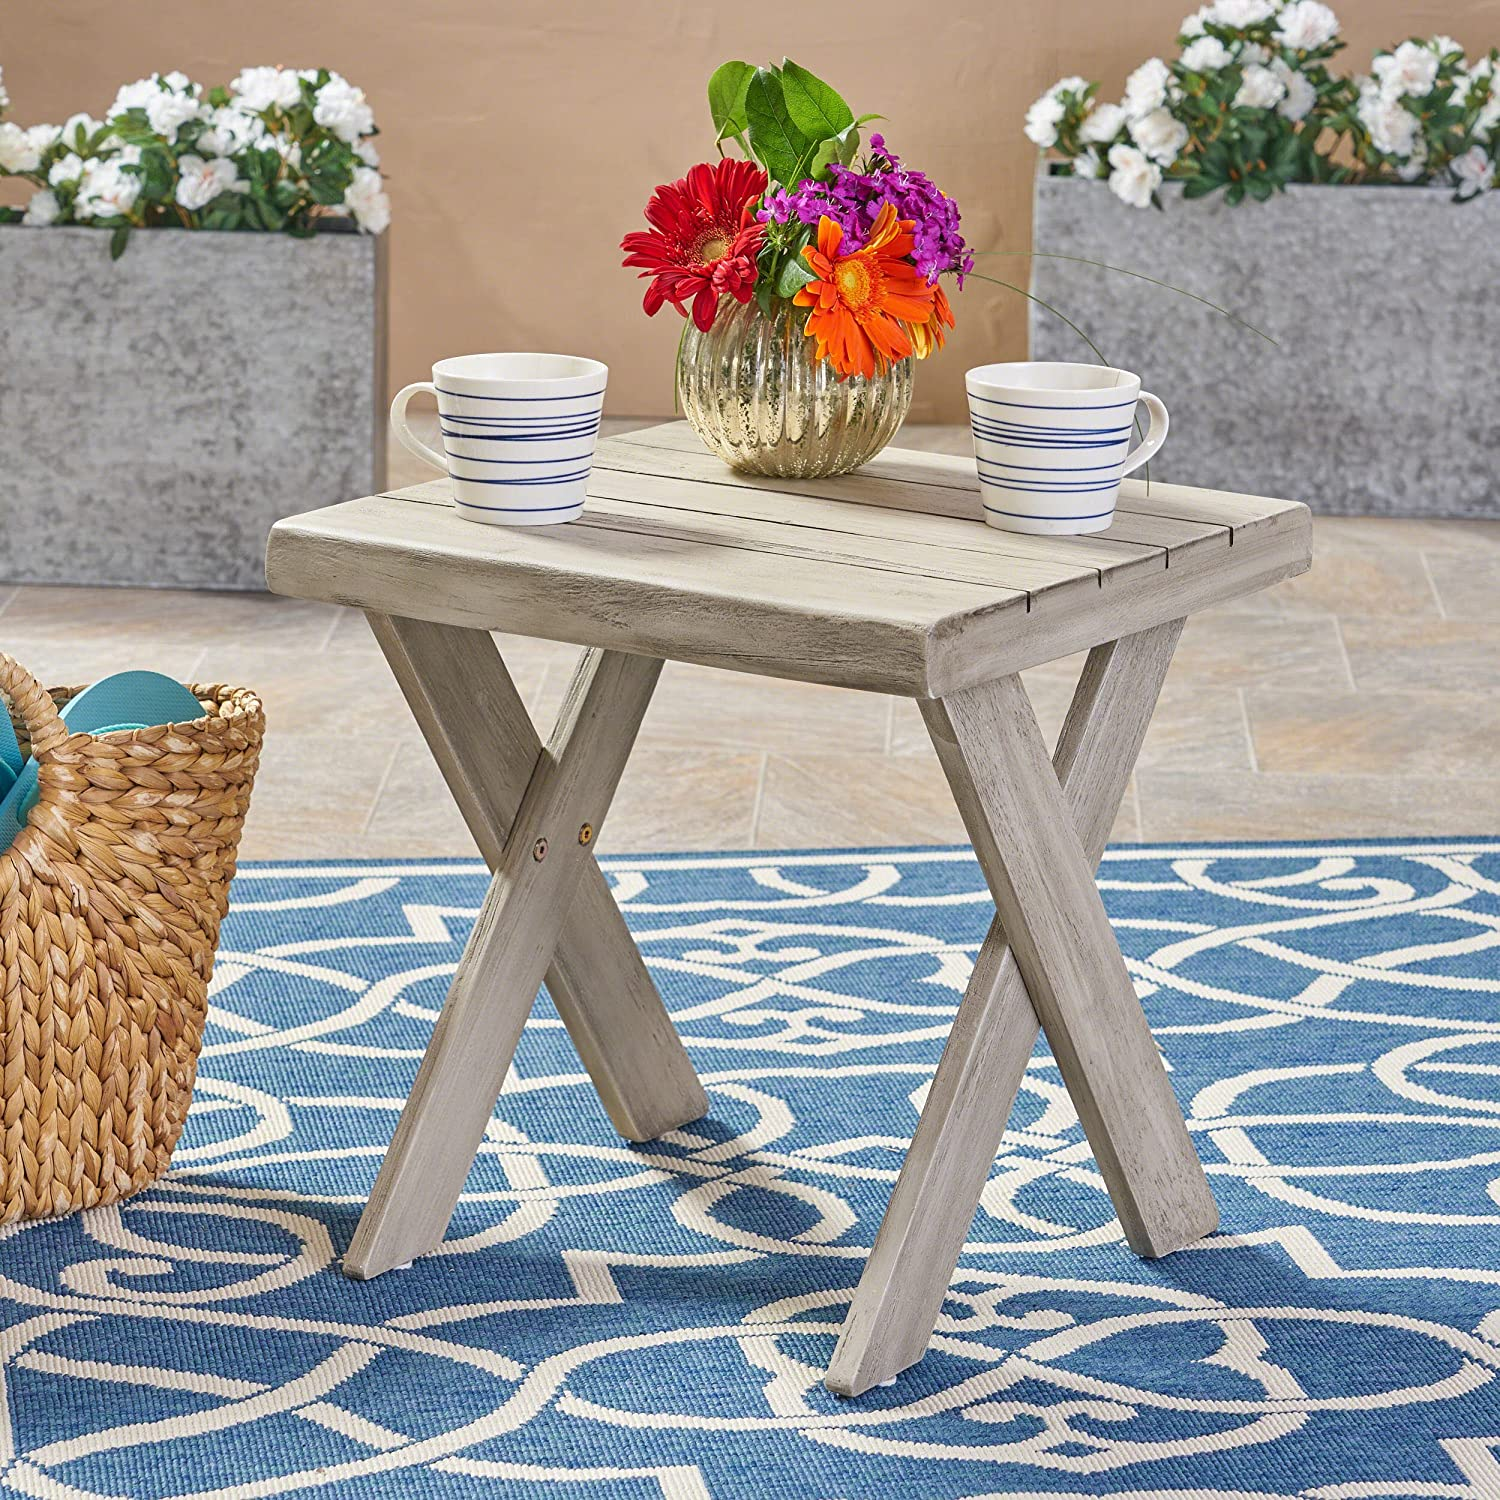 Christopher Knight Home Irene Outdoor Acacia Wood Side Table, Light Grey, Sandblast